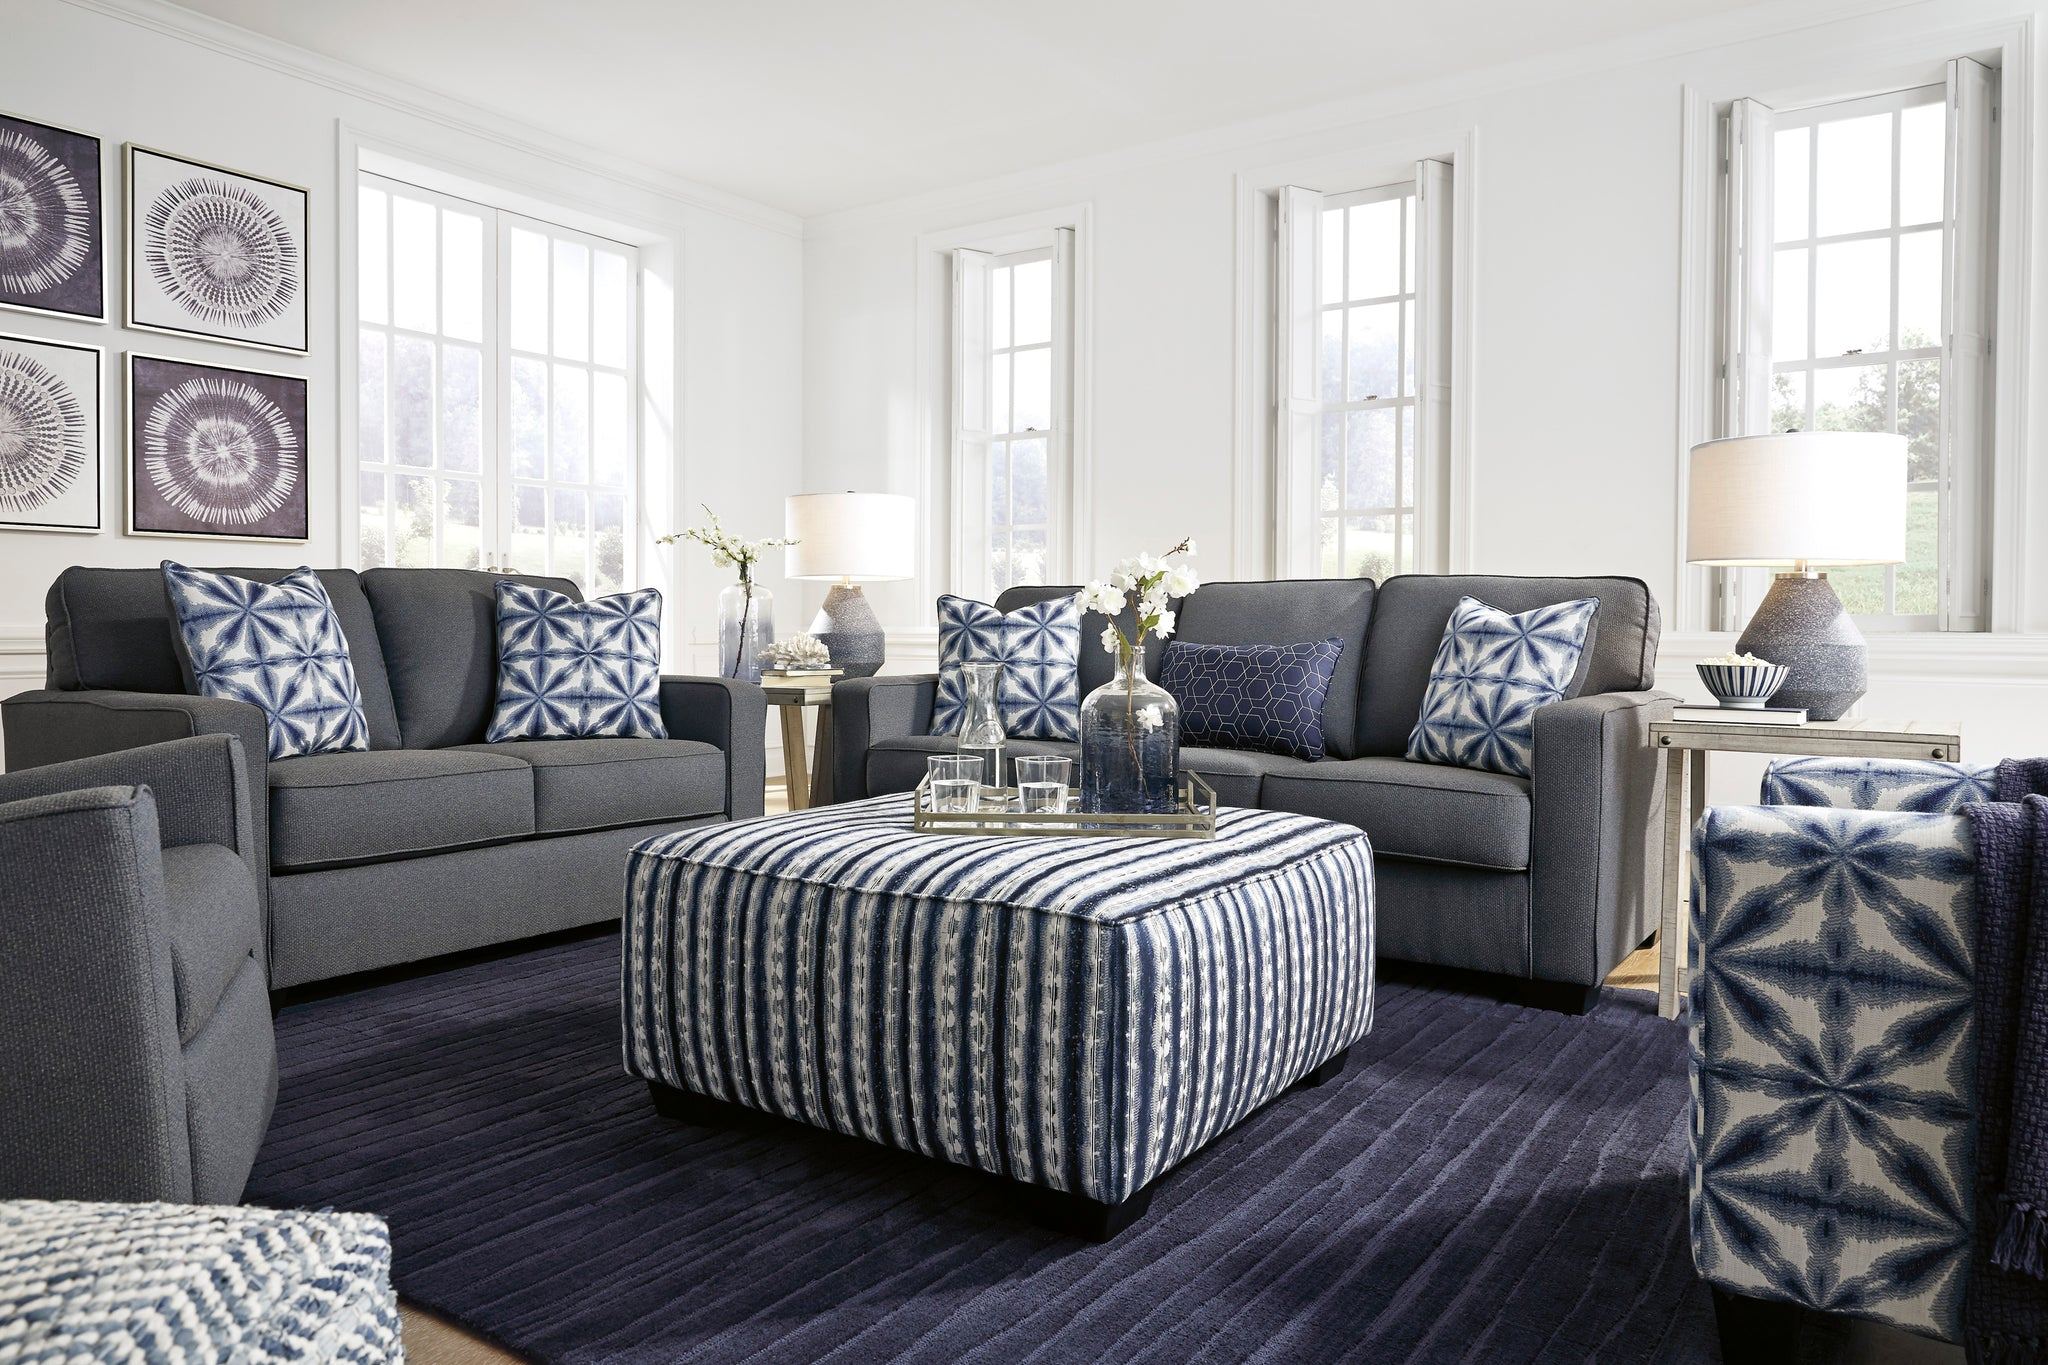 Picture of: Kiessel Nuvella Sofa And Loveseat By Ashley Furniture La Sierra Furniture